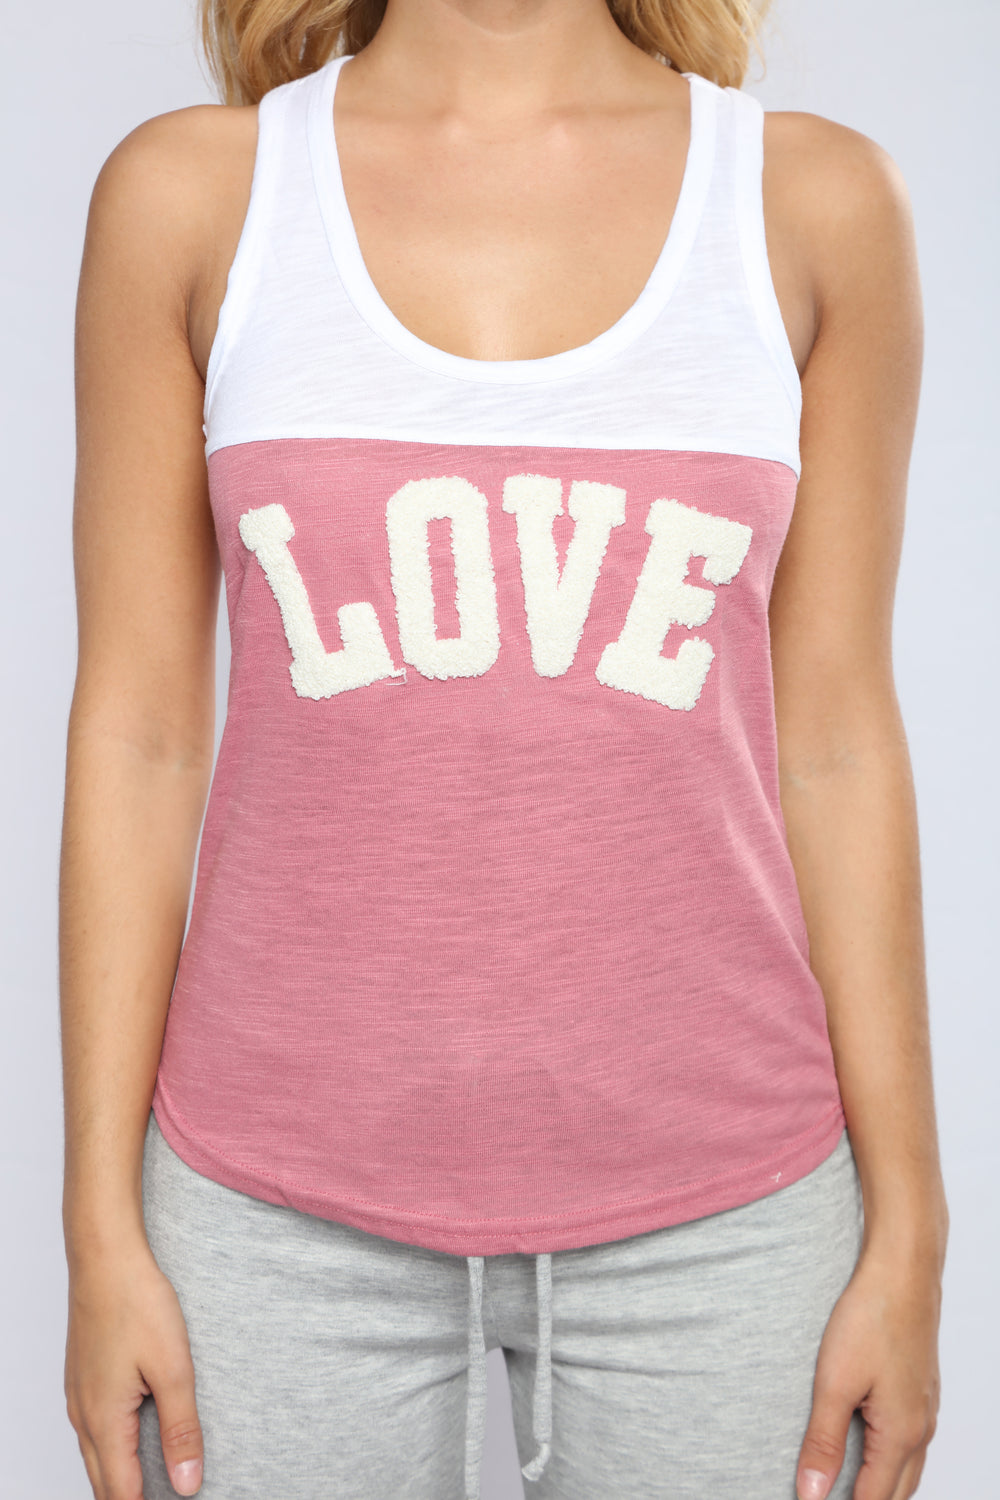 Feeling The Love Tank Top - Pink